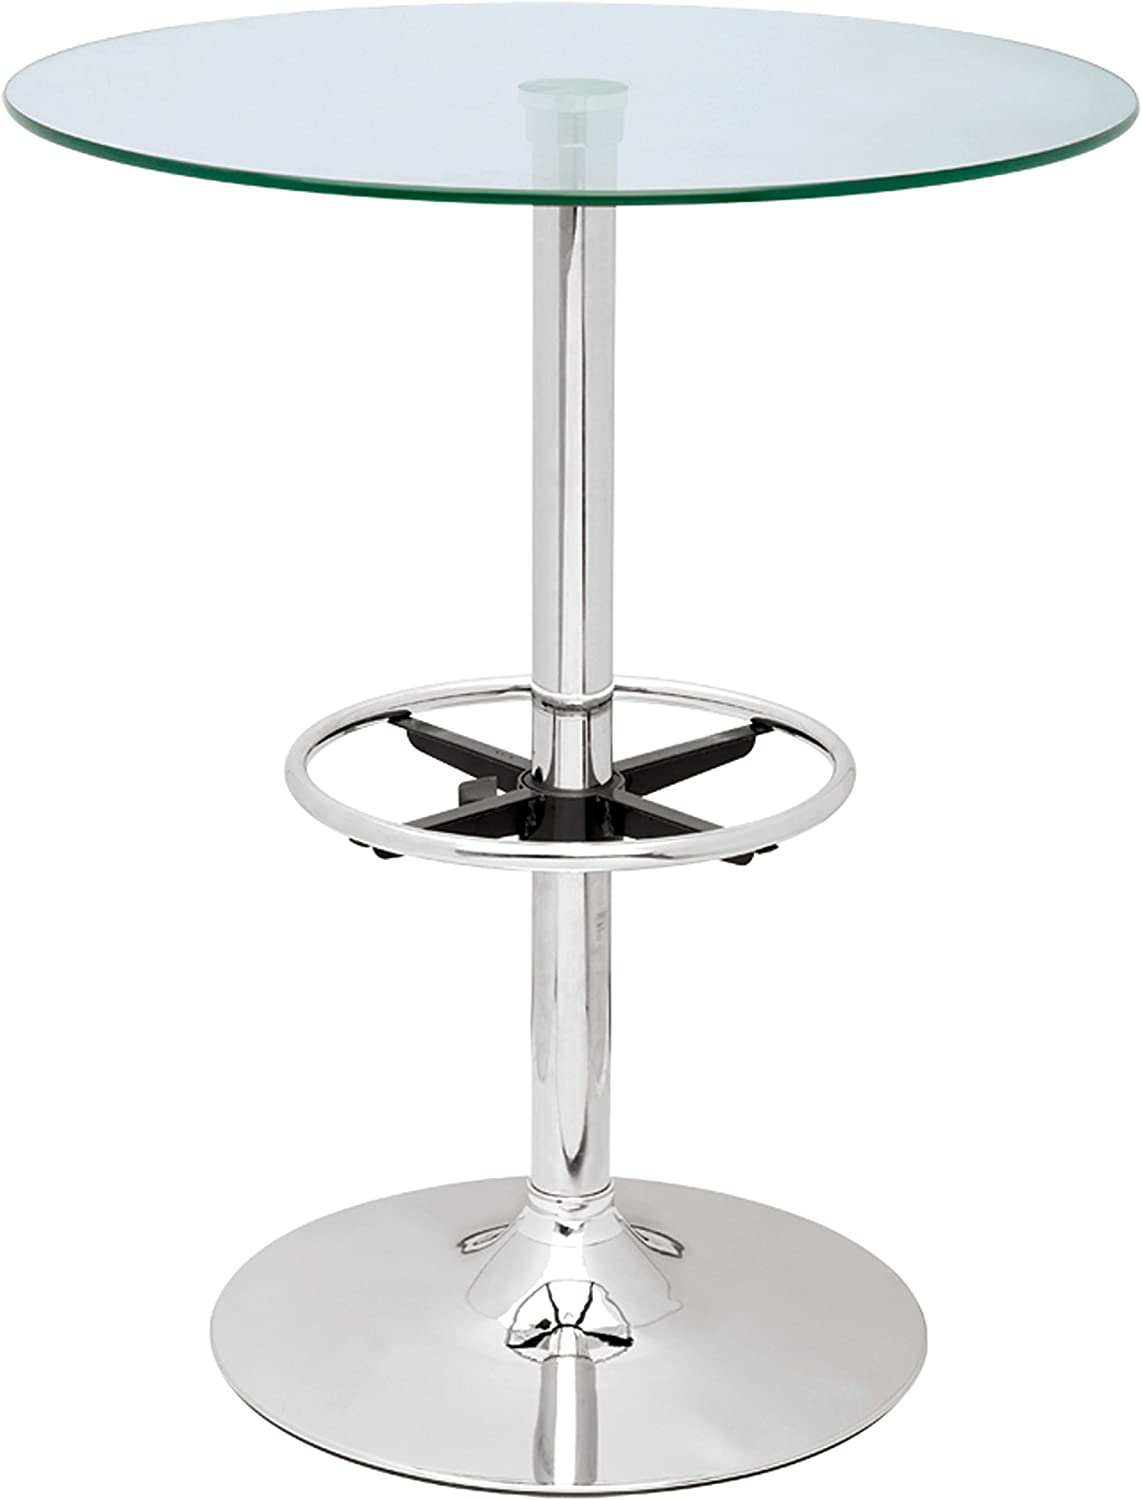 Chintaly Imports Pub Table with Round Glass Top, Chrome Clear